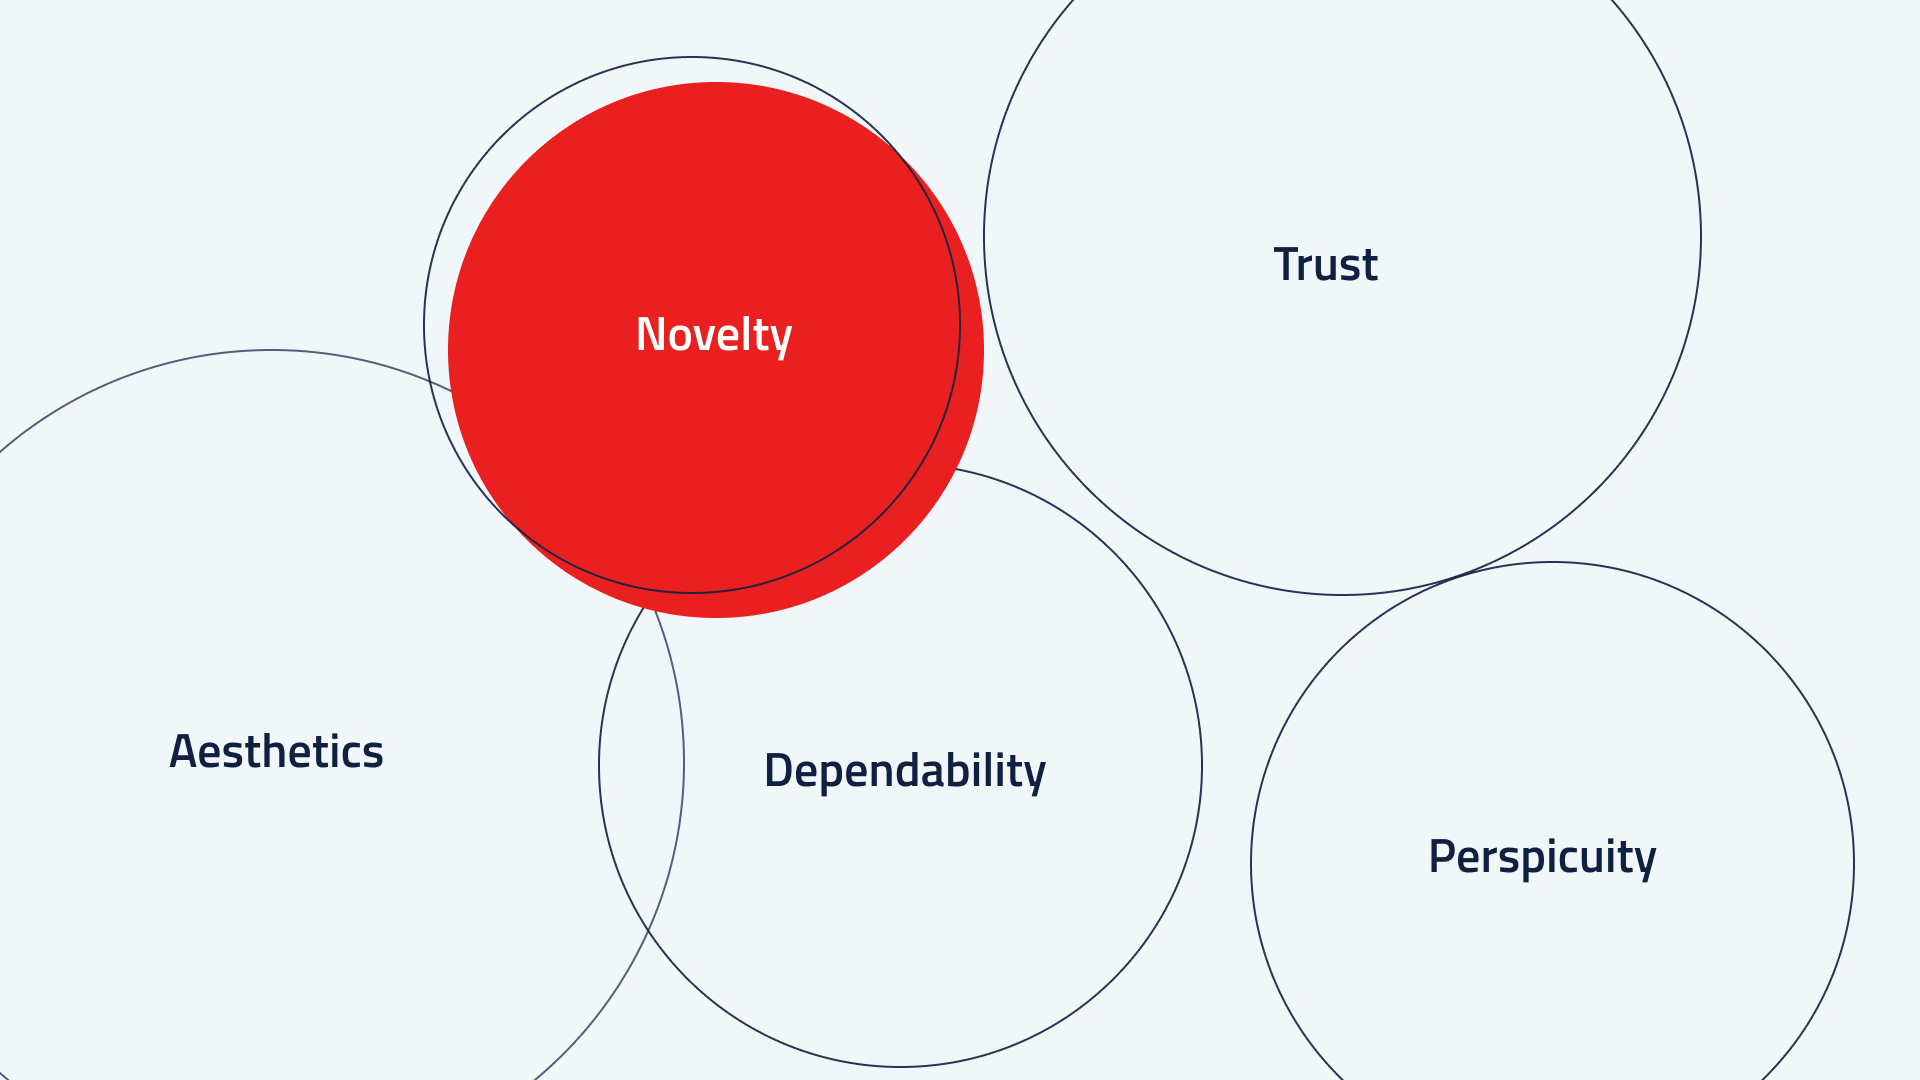 Infographic with the 5 measured values: Aesthetics, Novelty, Trust, Dependability, Perspicuity